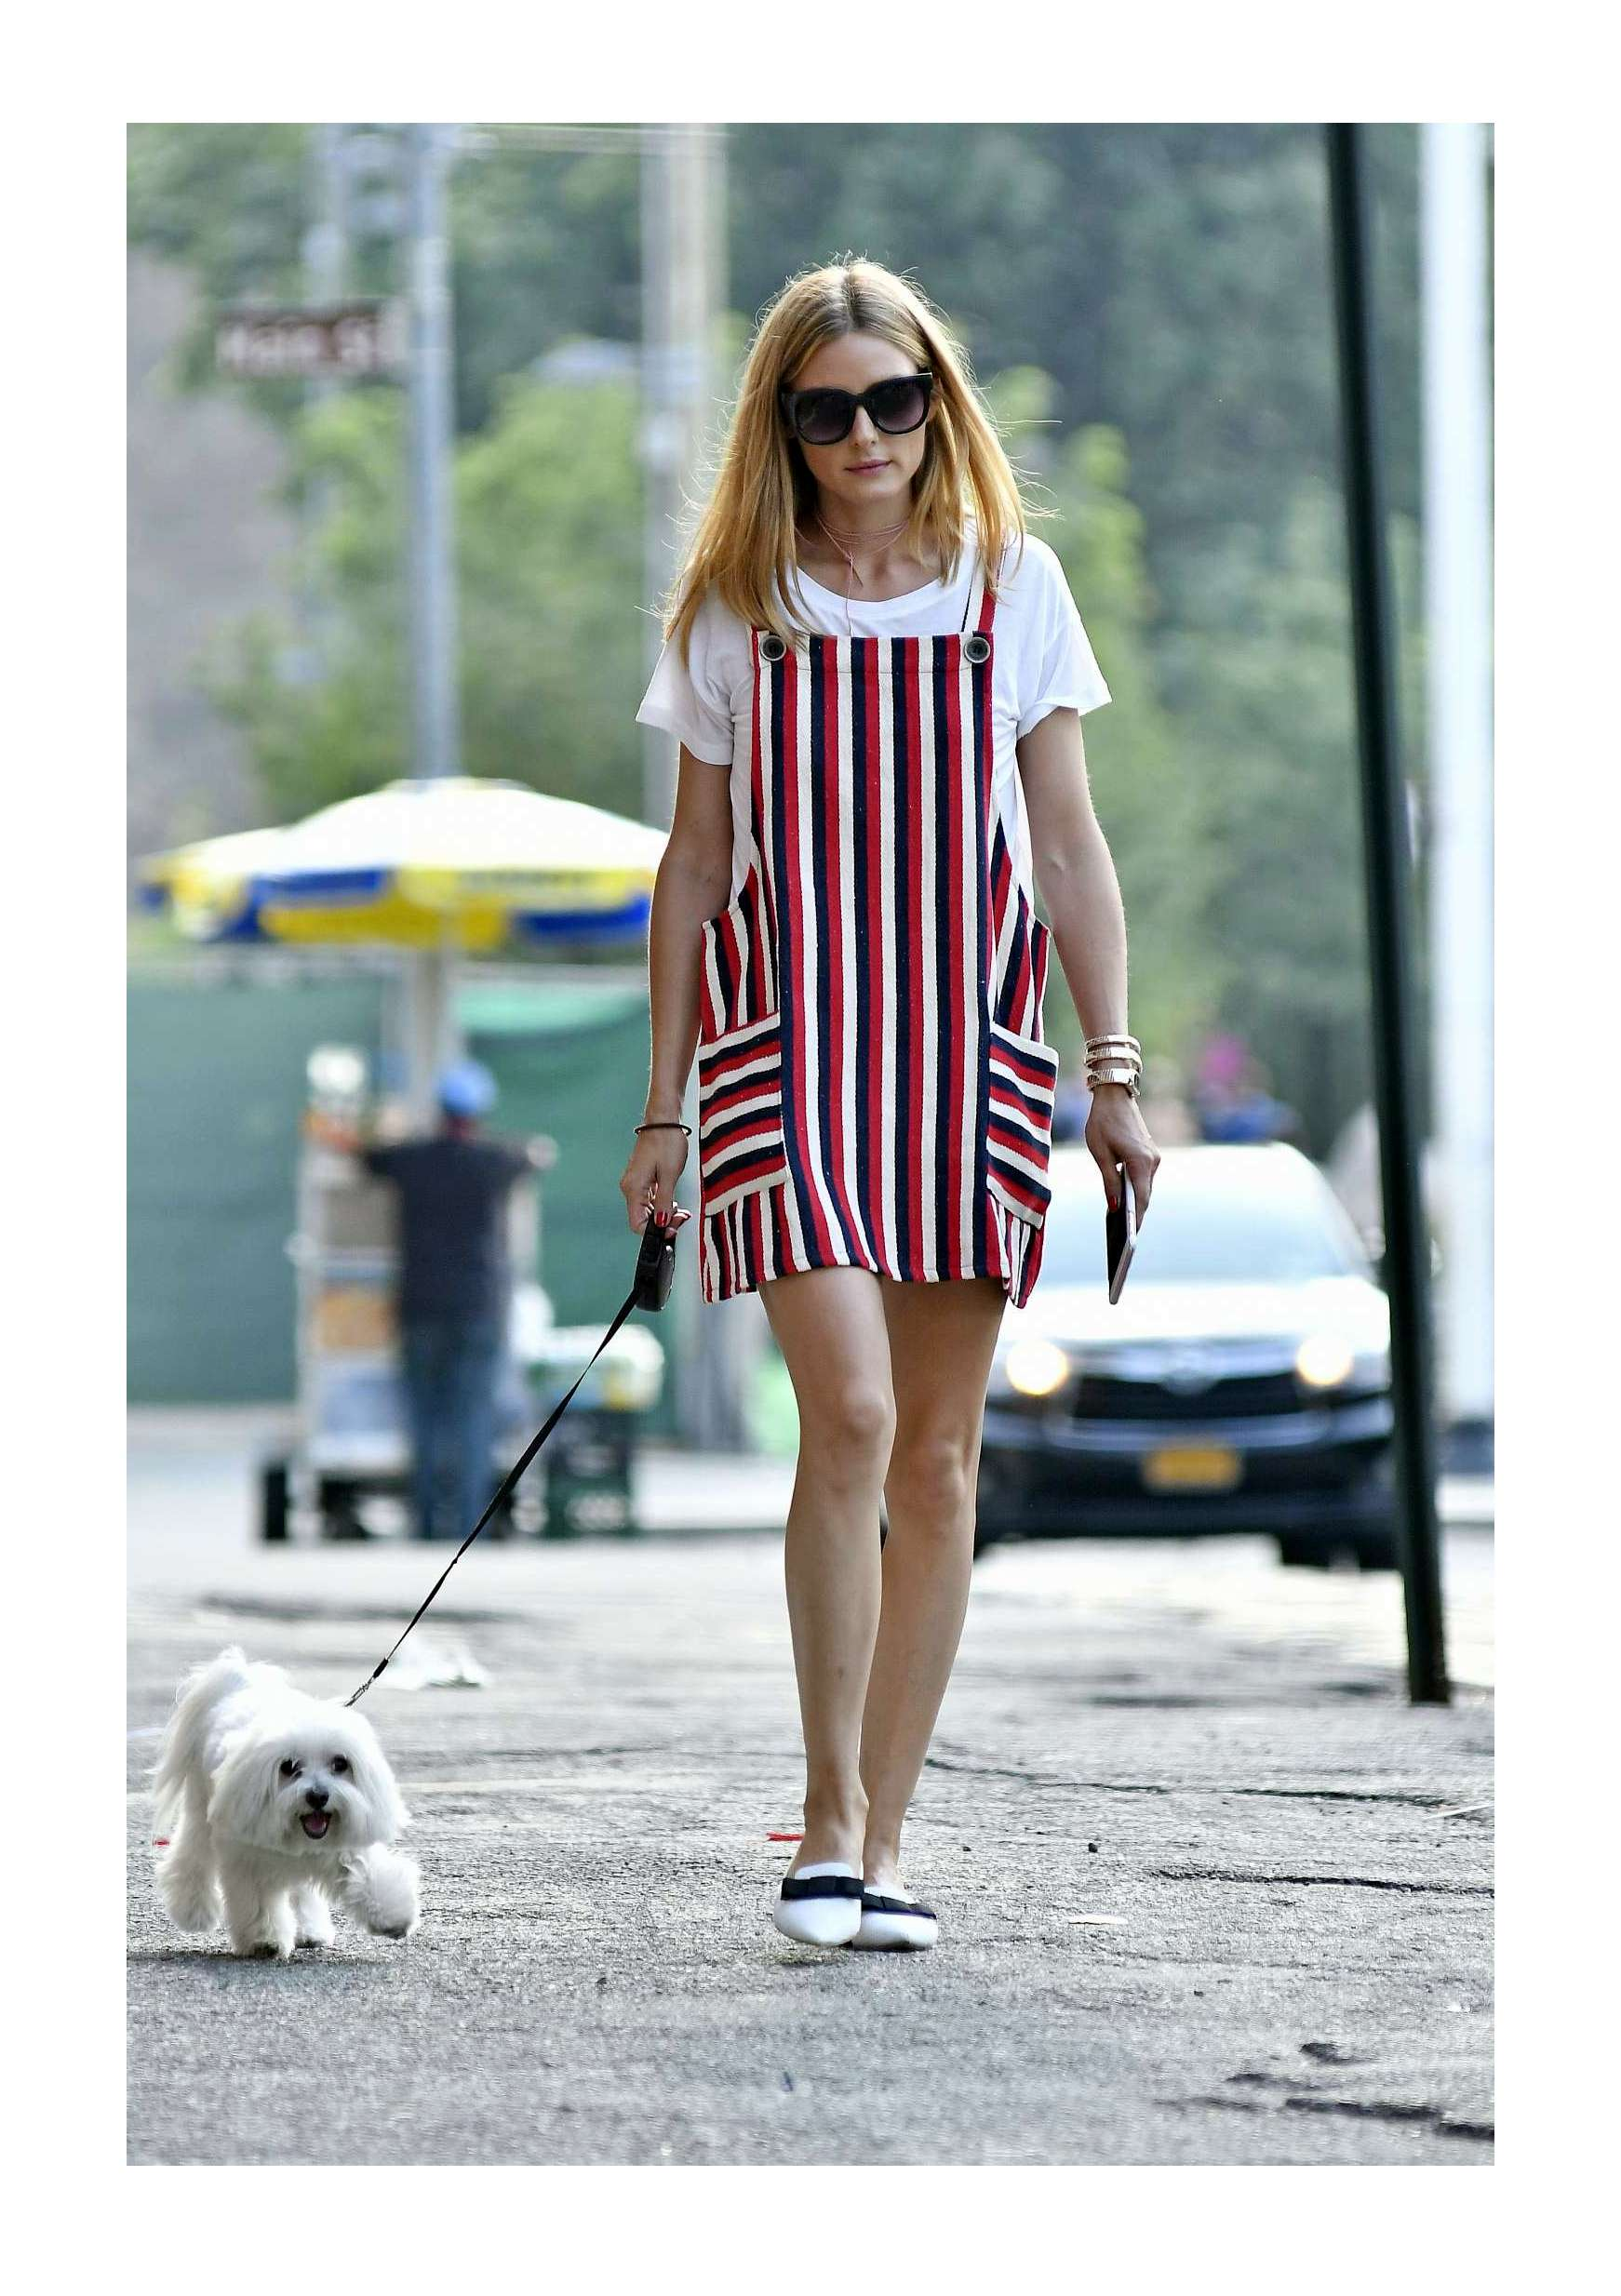 Olivia-Palermo-walking-her-dog--03.jpg